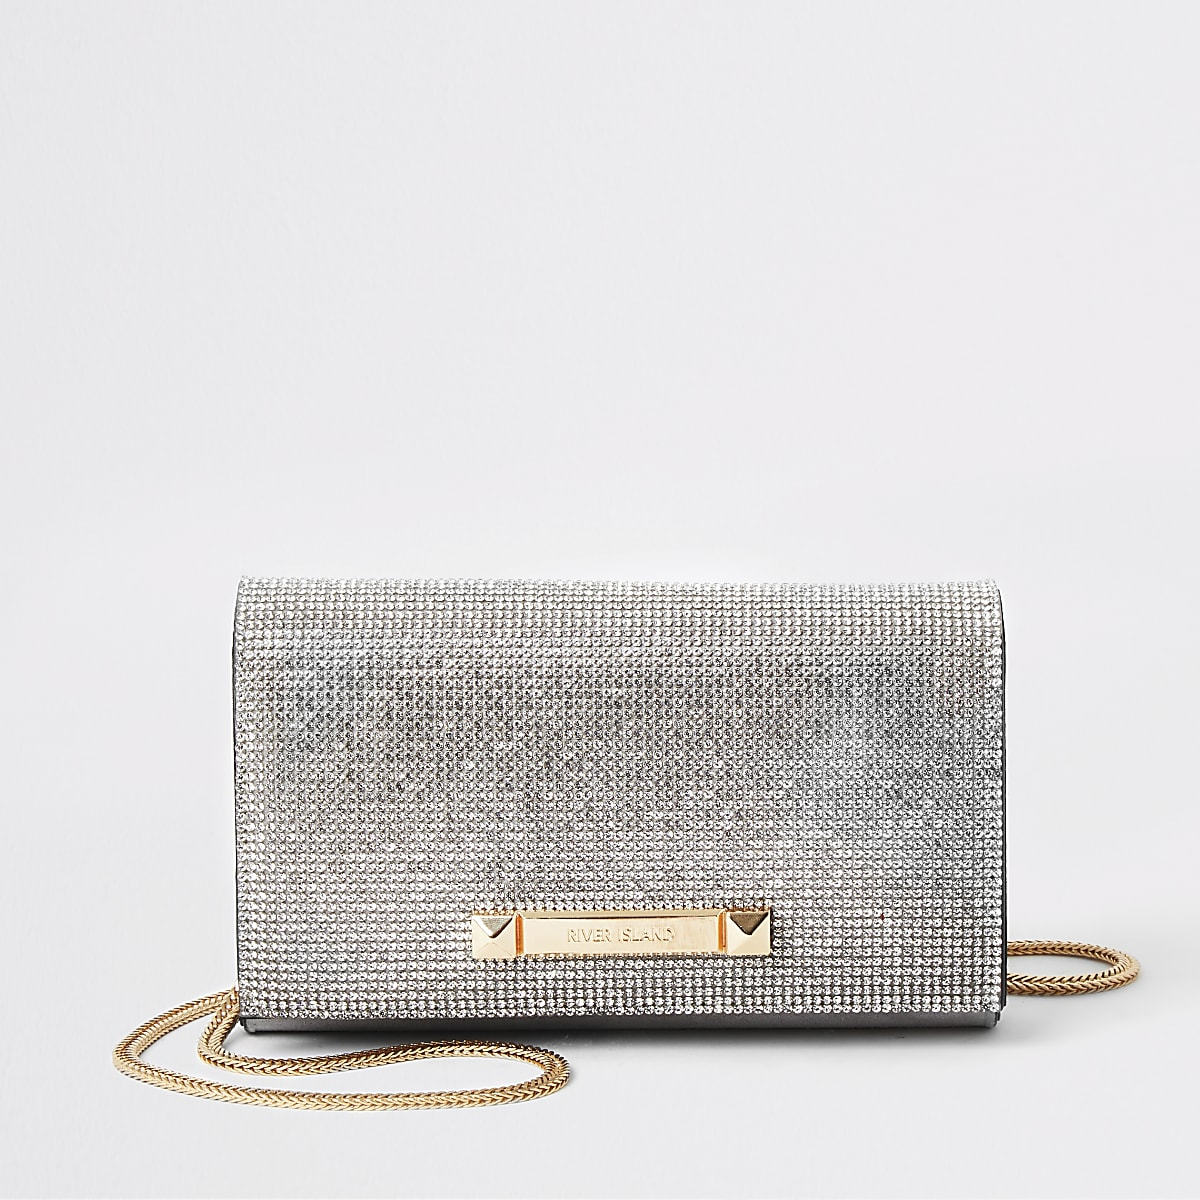 Silver diamante underarm bag